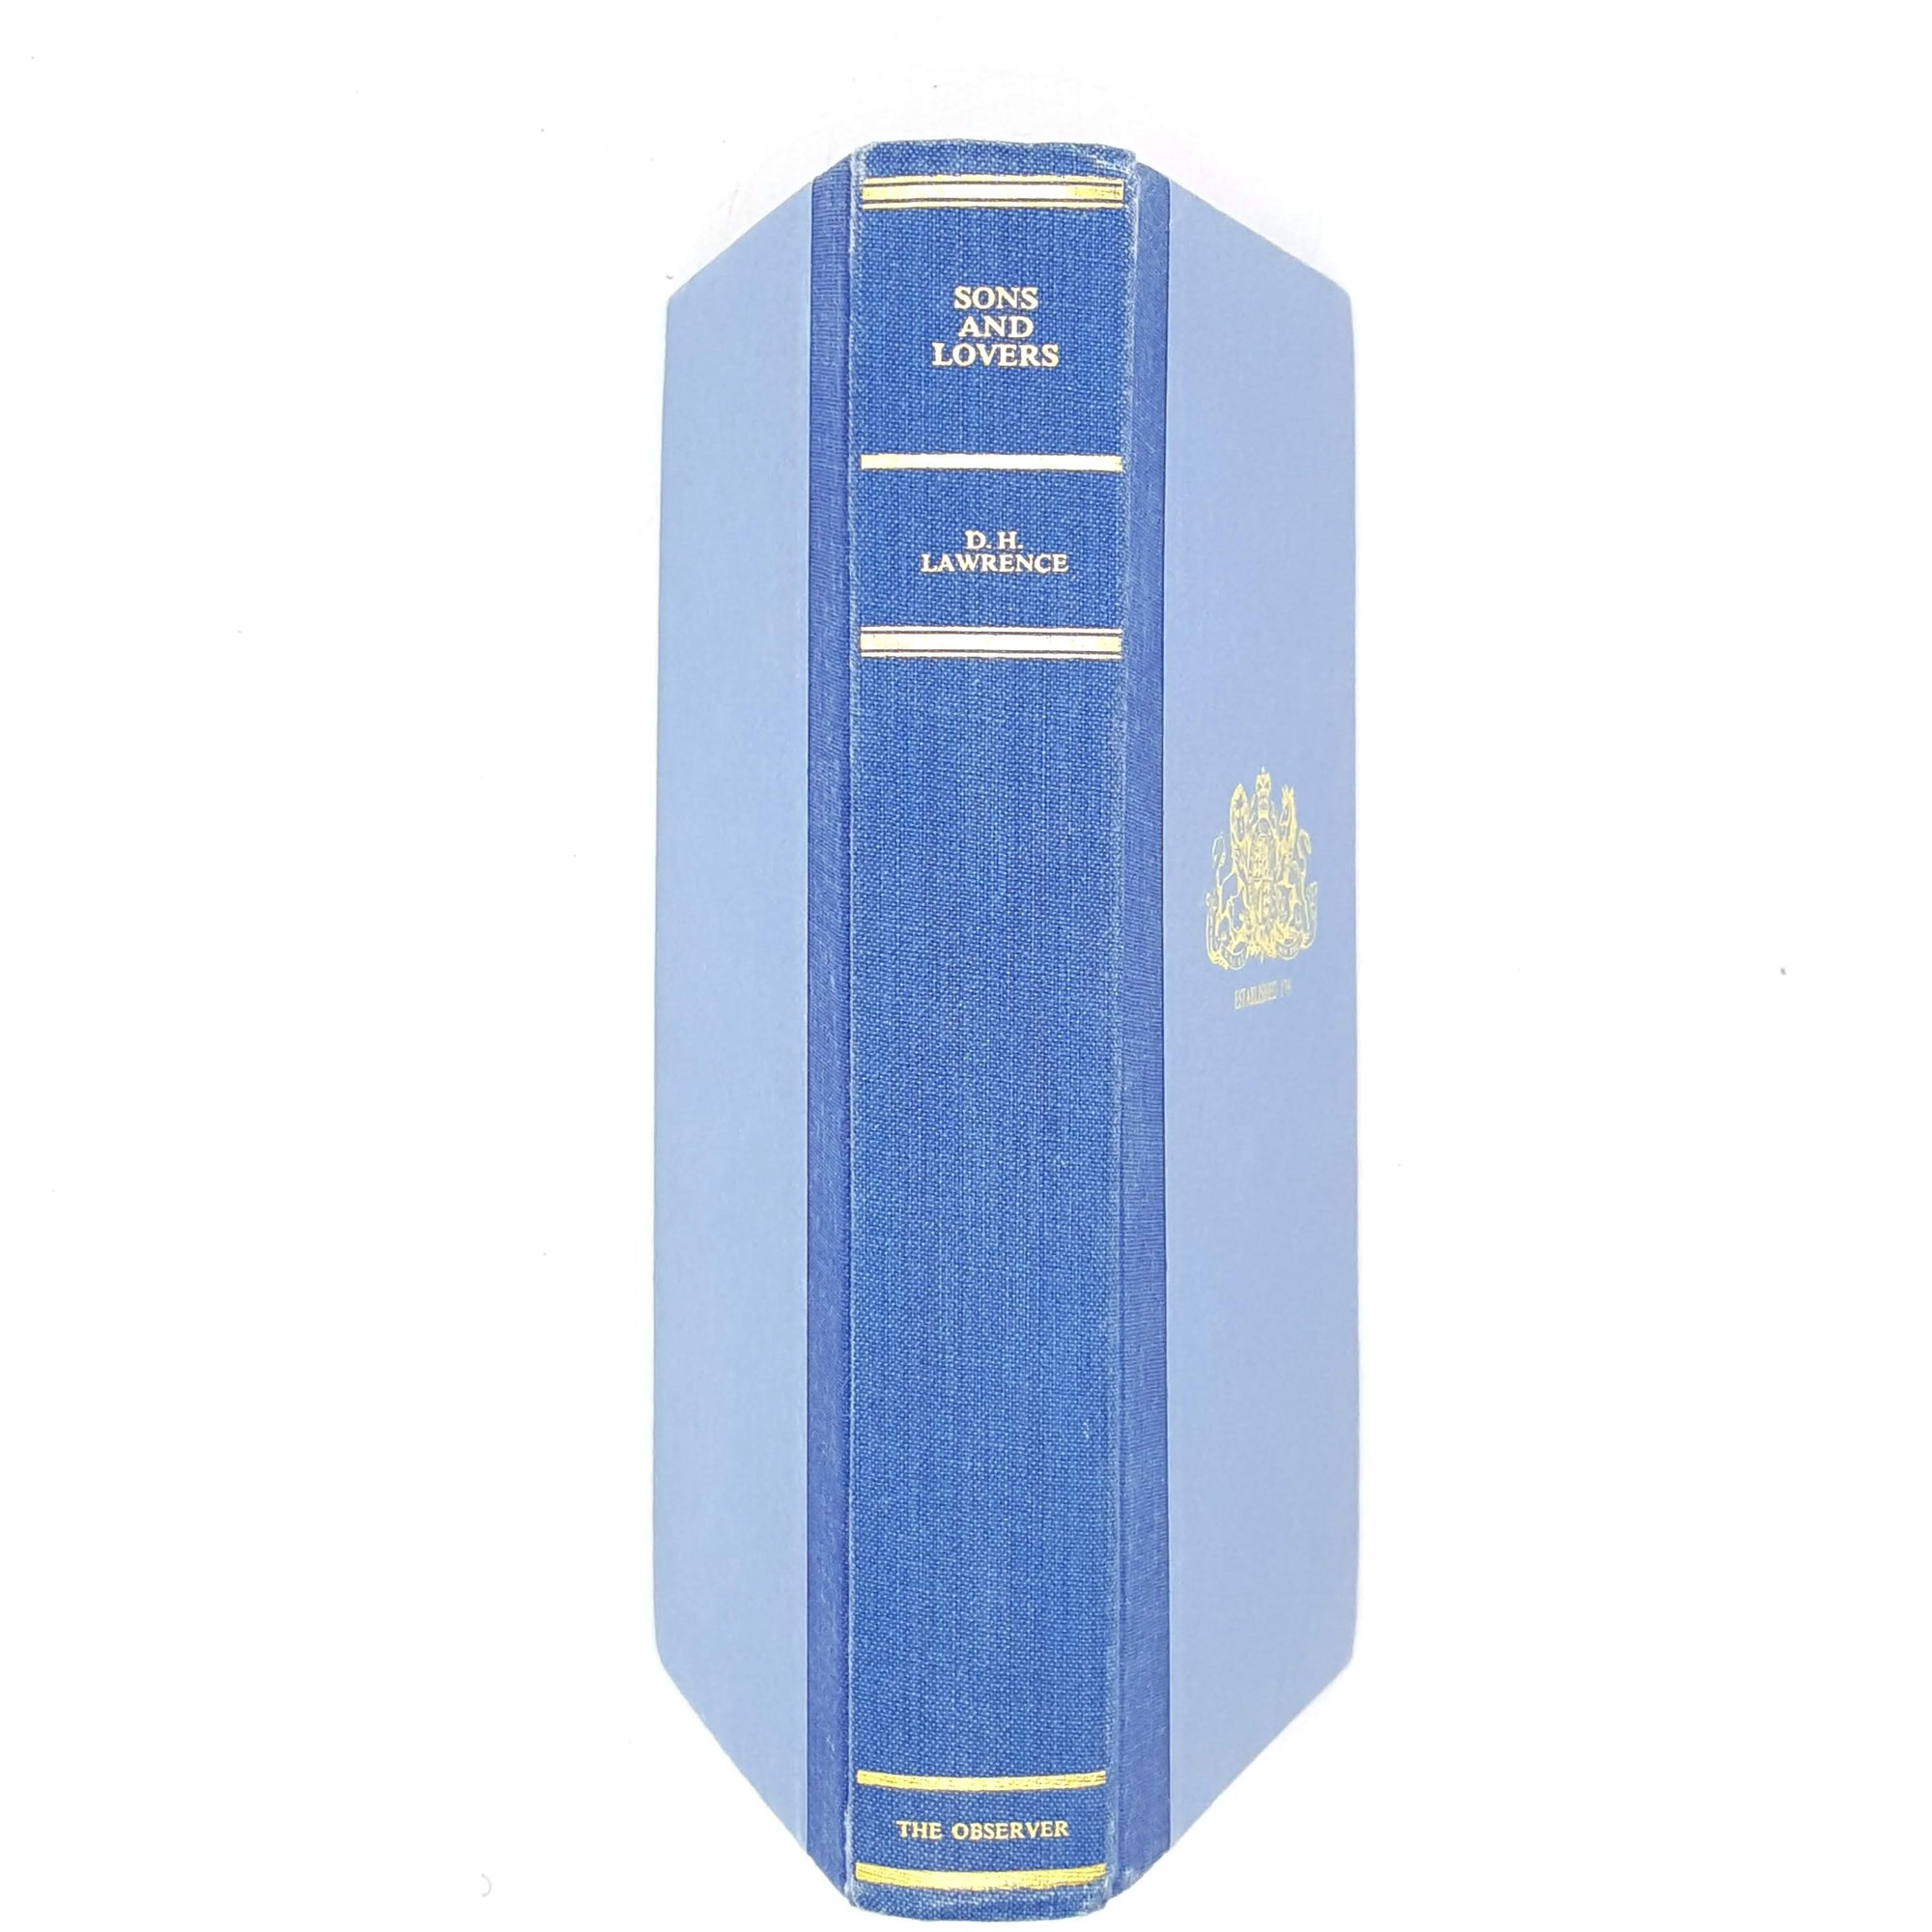 Sons and Lovers by D.H. Lawrence The Observer Edition